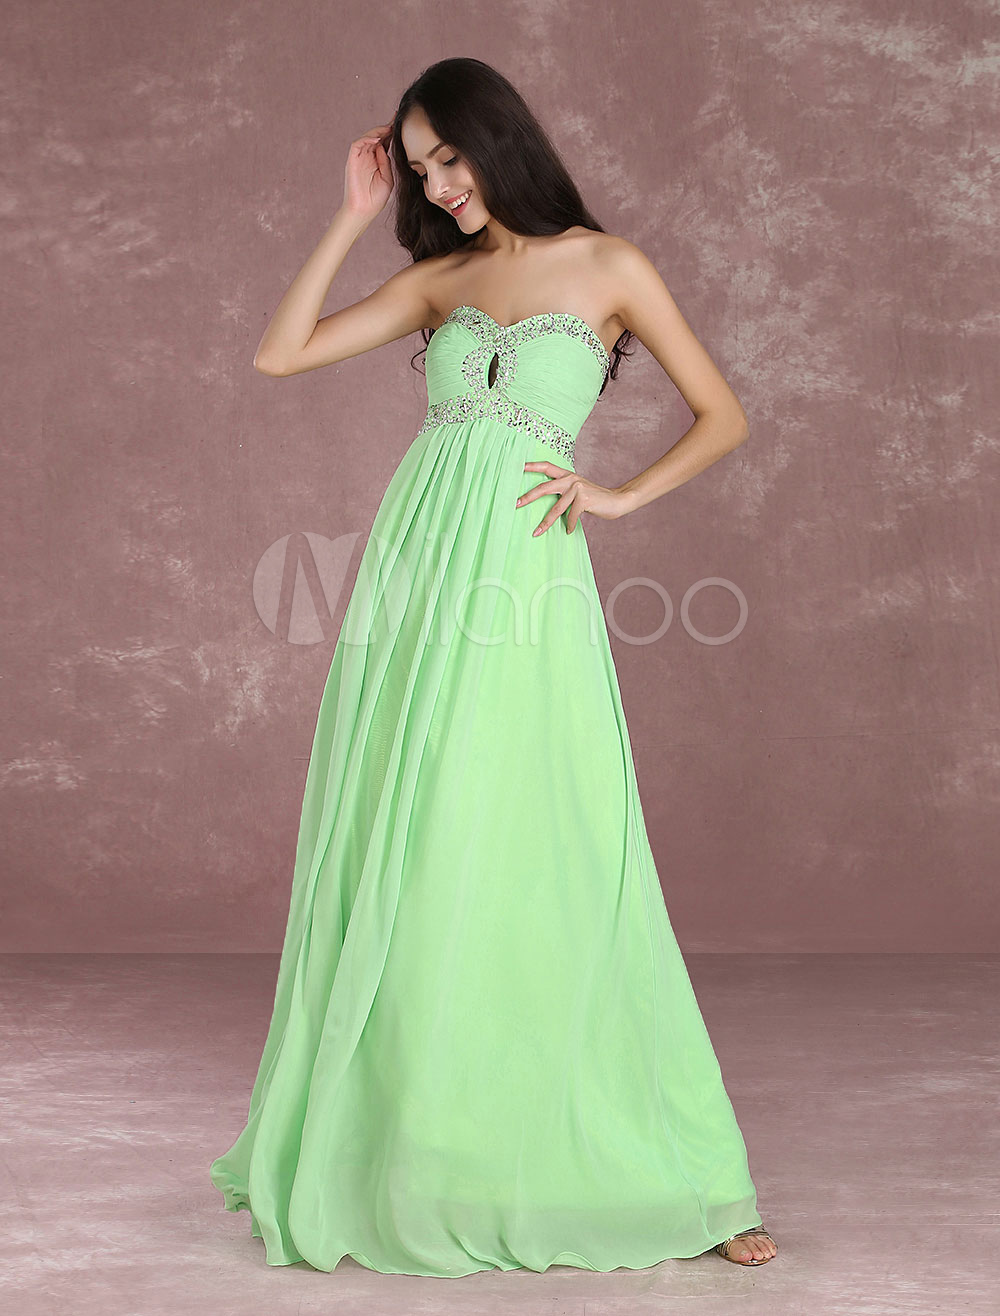 Chiffon Prom Dress Sweatheart Strapless Sequin Occasion Dress Beading Ruched Floor Length Blue Green Long Party Dress (Wedding Prom Dresses) photo